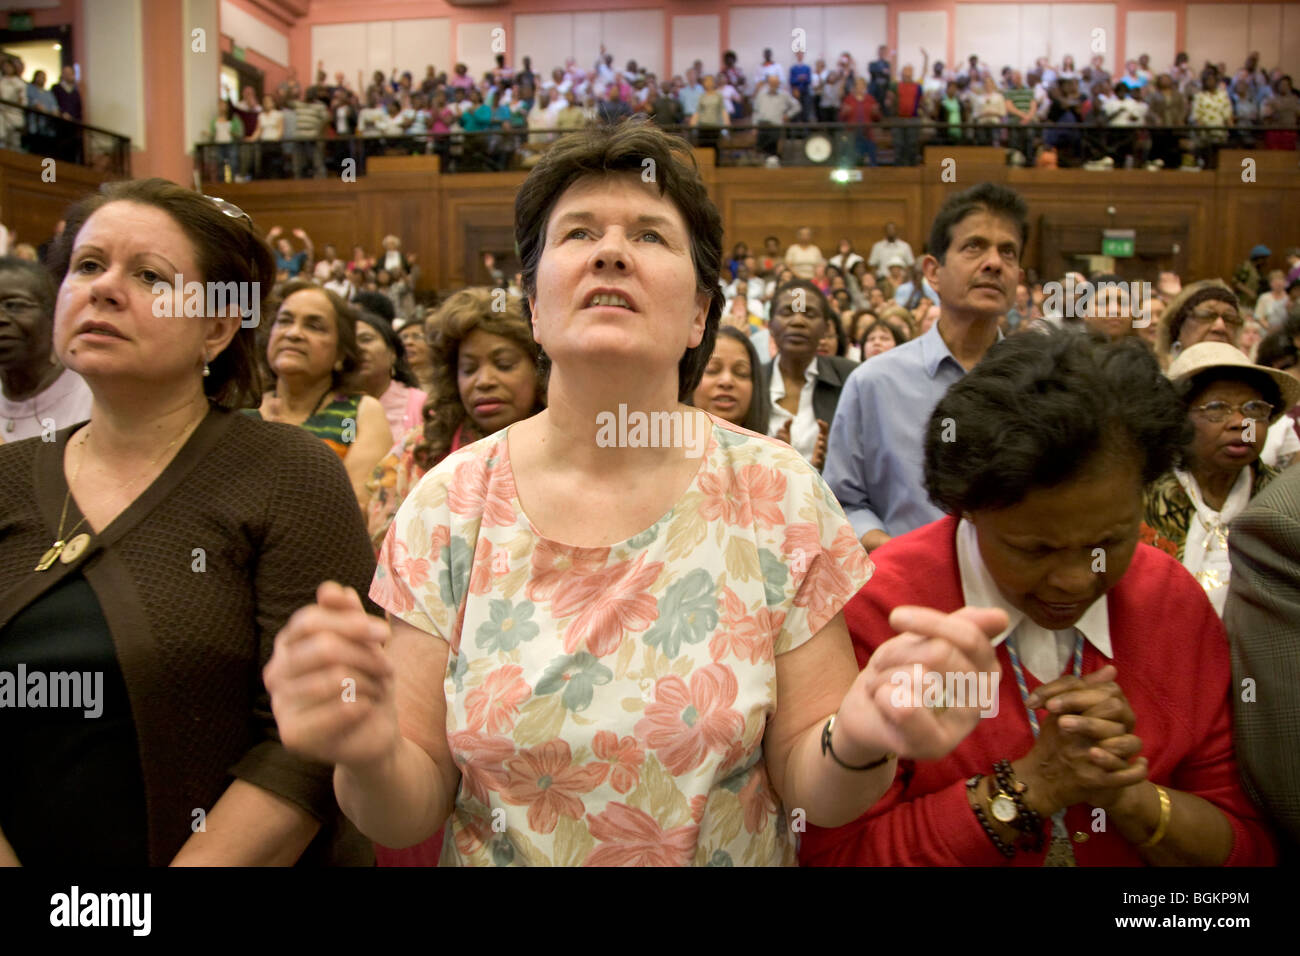 Prayer and Praise at rally organised by Cor Lumen Christi Community London uk Stock Photo